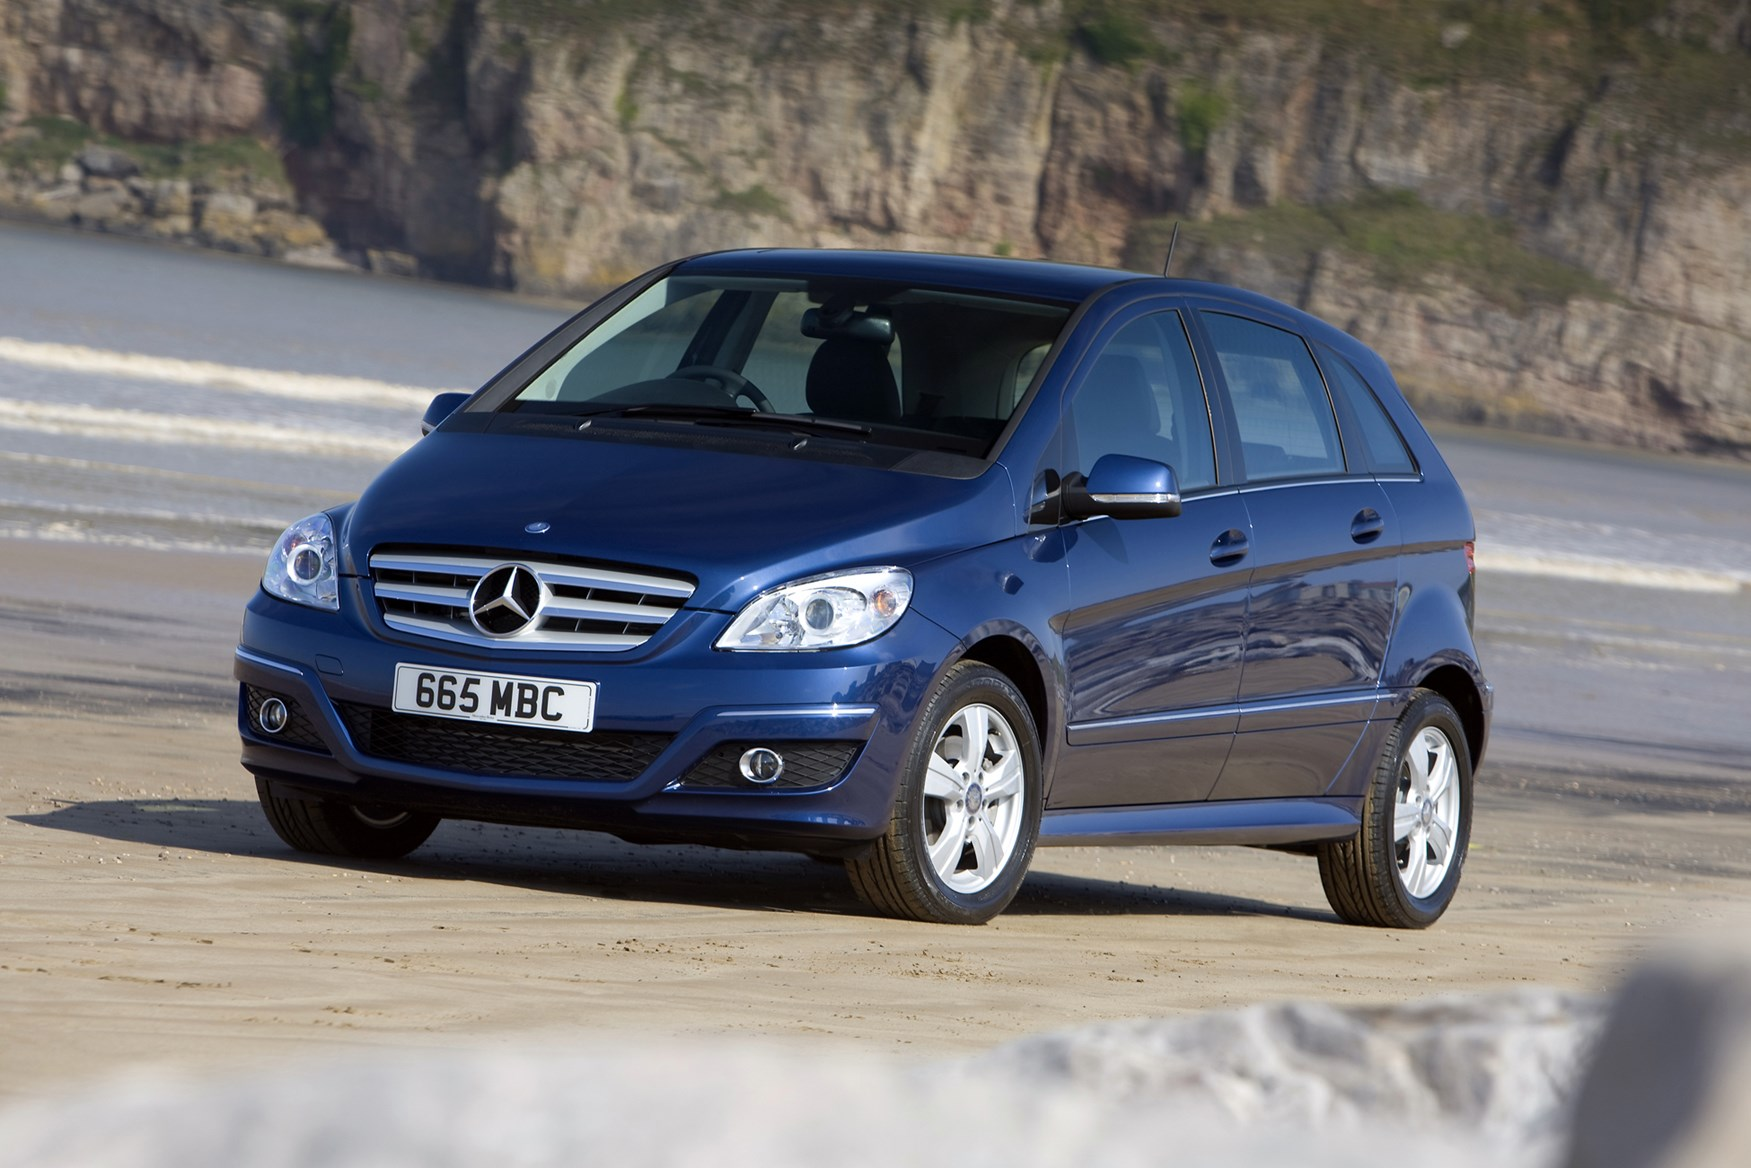 Mercedes benz b class hatchback 2005 2011 photos parkers for Mercedes benz b class review